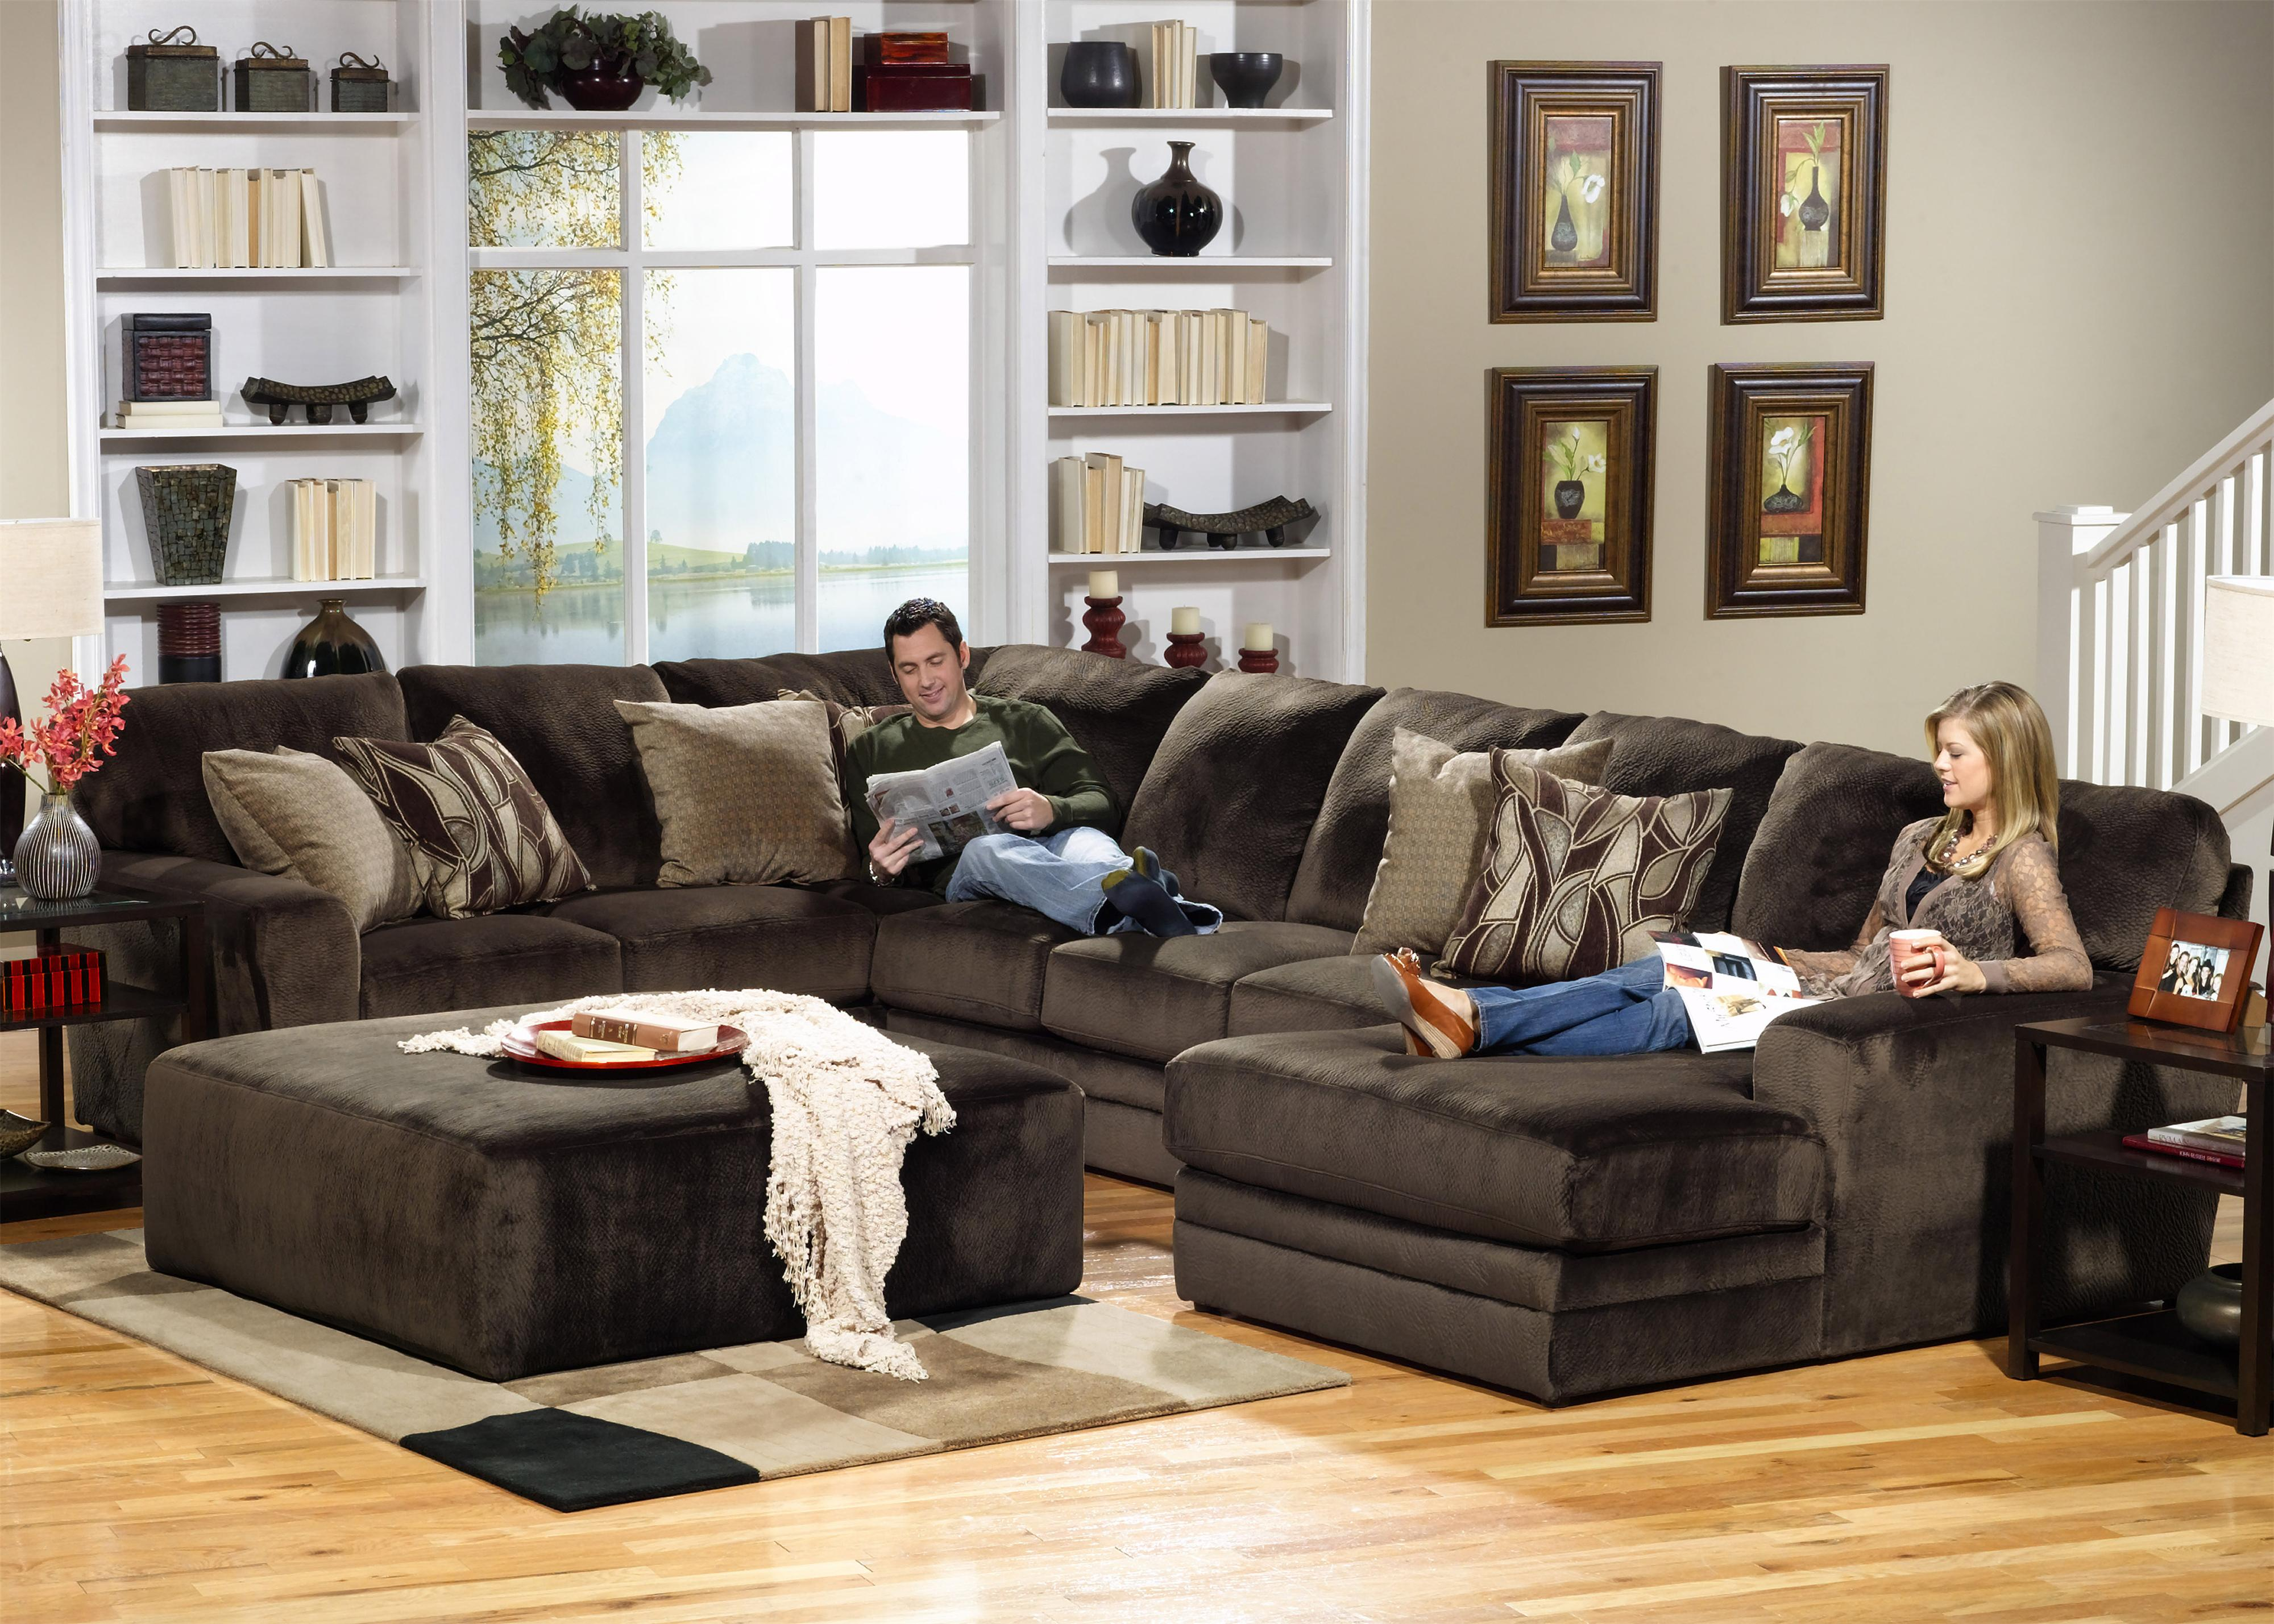 Jackson Furniture 4377 Everest 3 Piece Sectional with RSF Section - Wayside Furniture - Sectional Sofas : jackson furniture sectional - Sectionals, Sofas & Couches